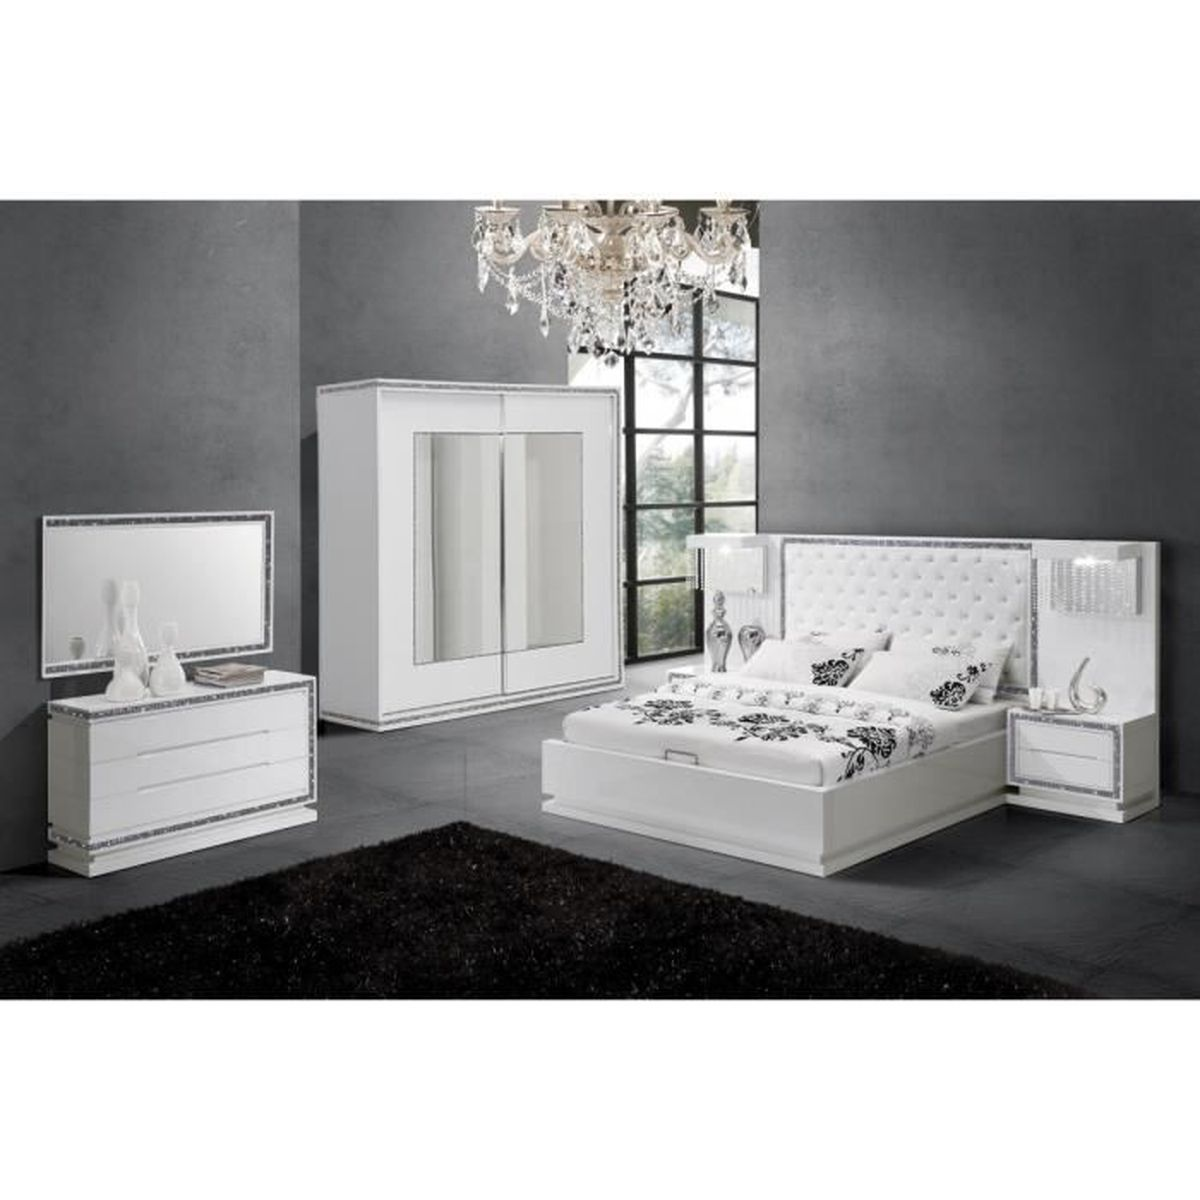 chambre compl te design coloris blanc laqu avec strass. Black Bedroom Furniture Sets. Home Design Ideas